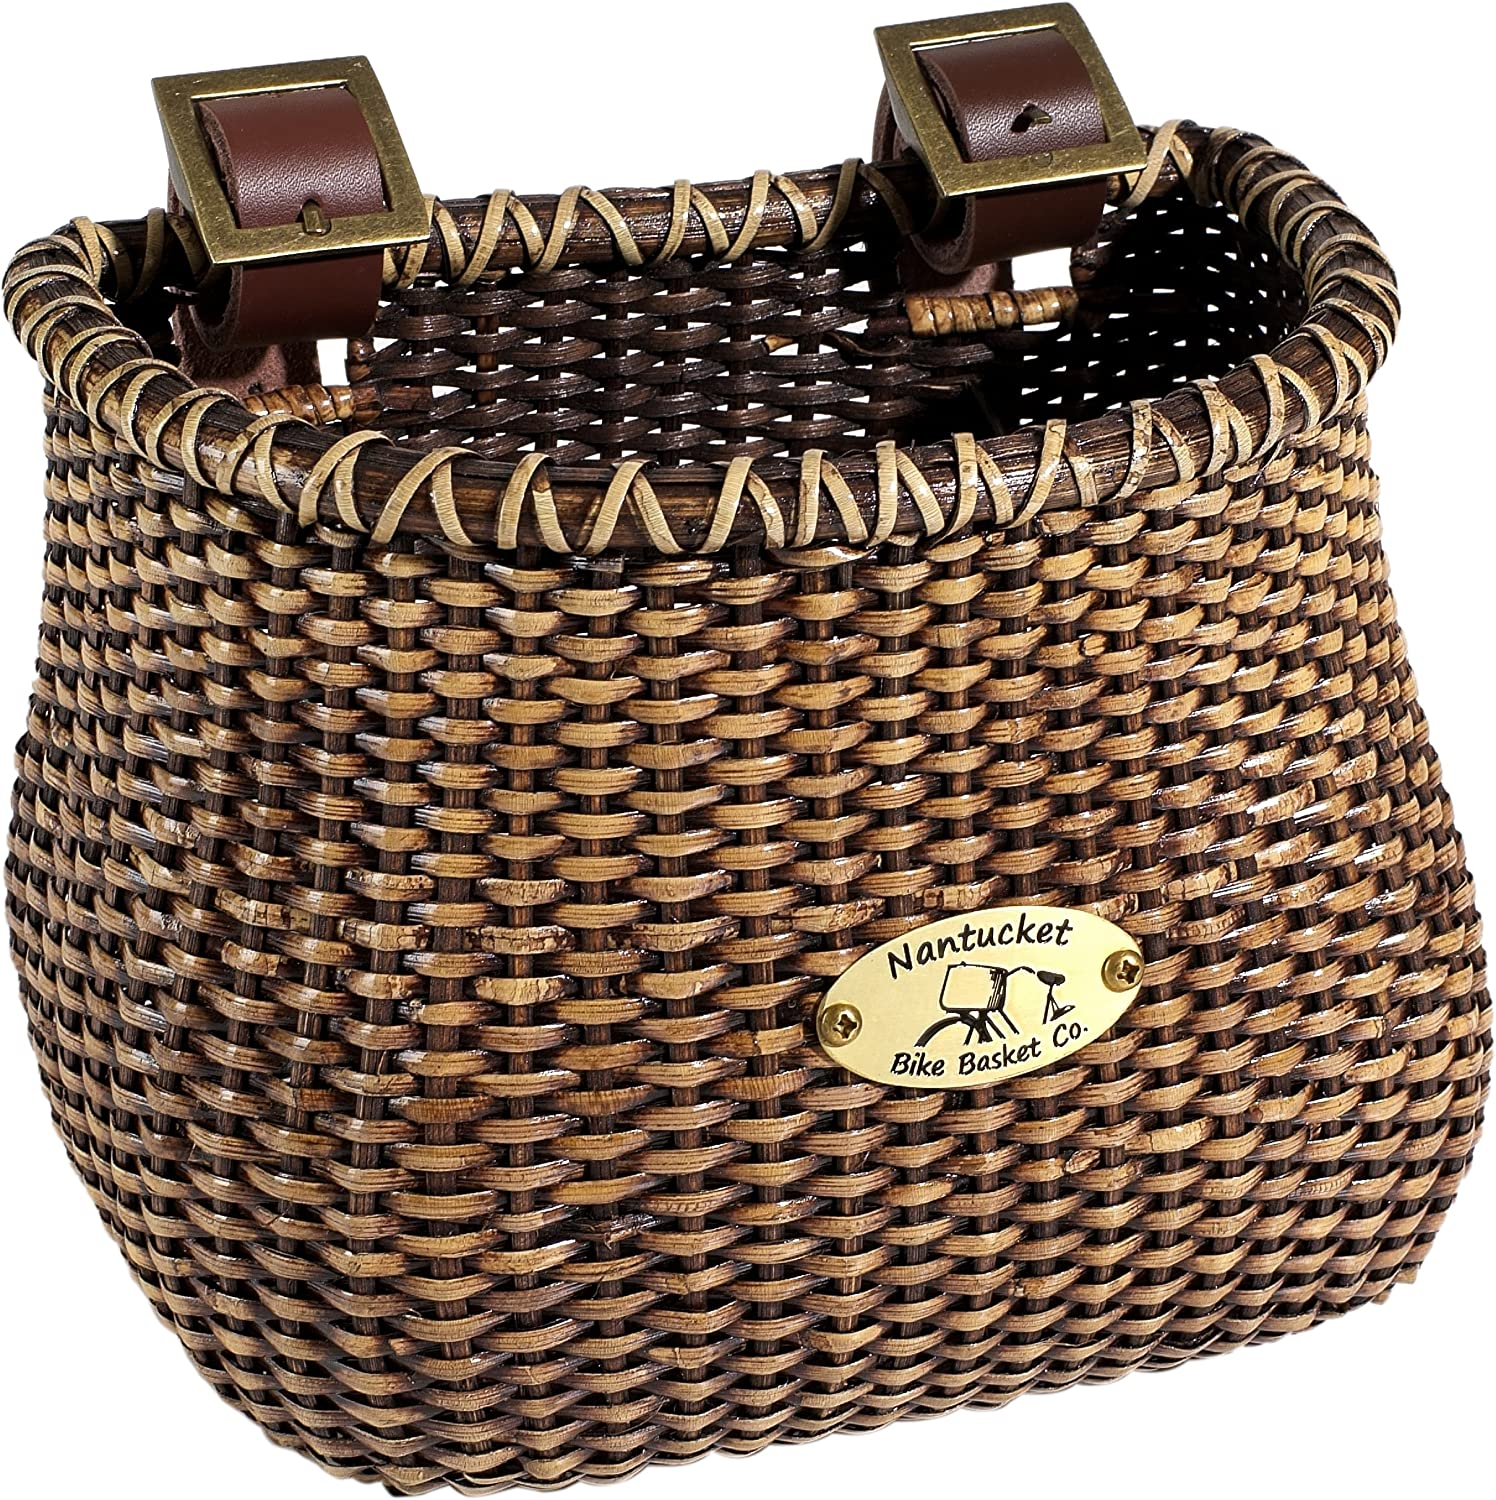 Nantucket Bicycle Basket Co. Lightship Collection Children's Bicycle Basket